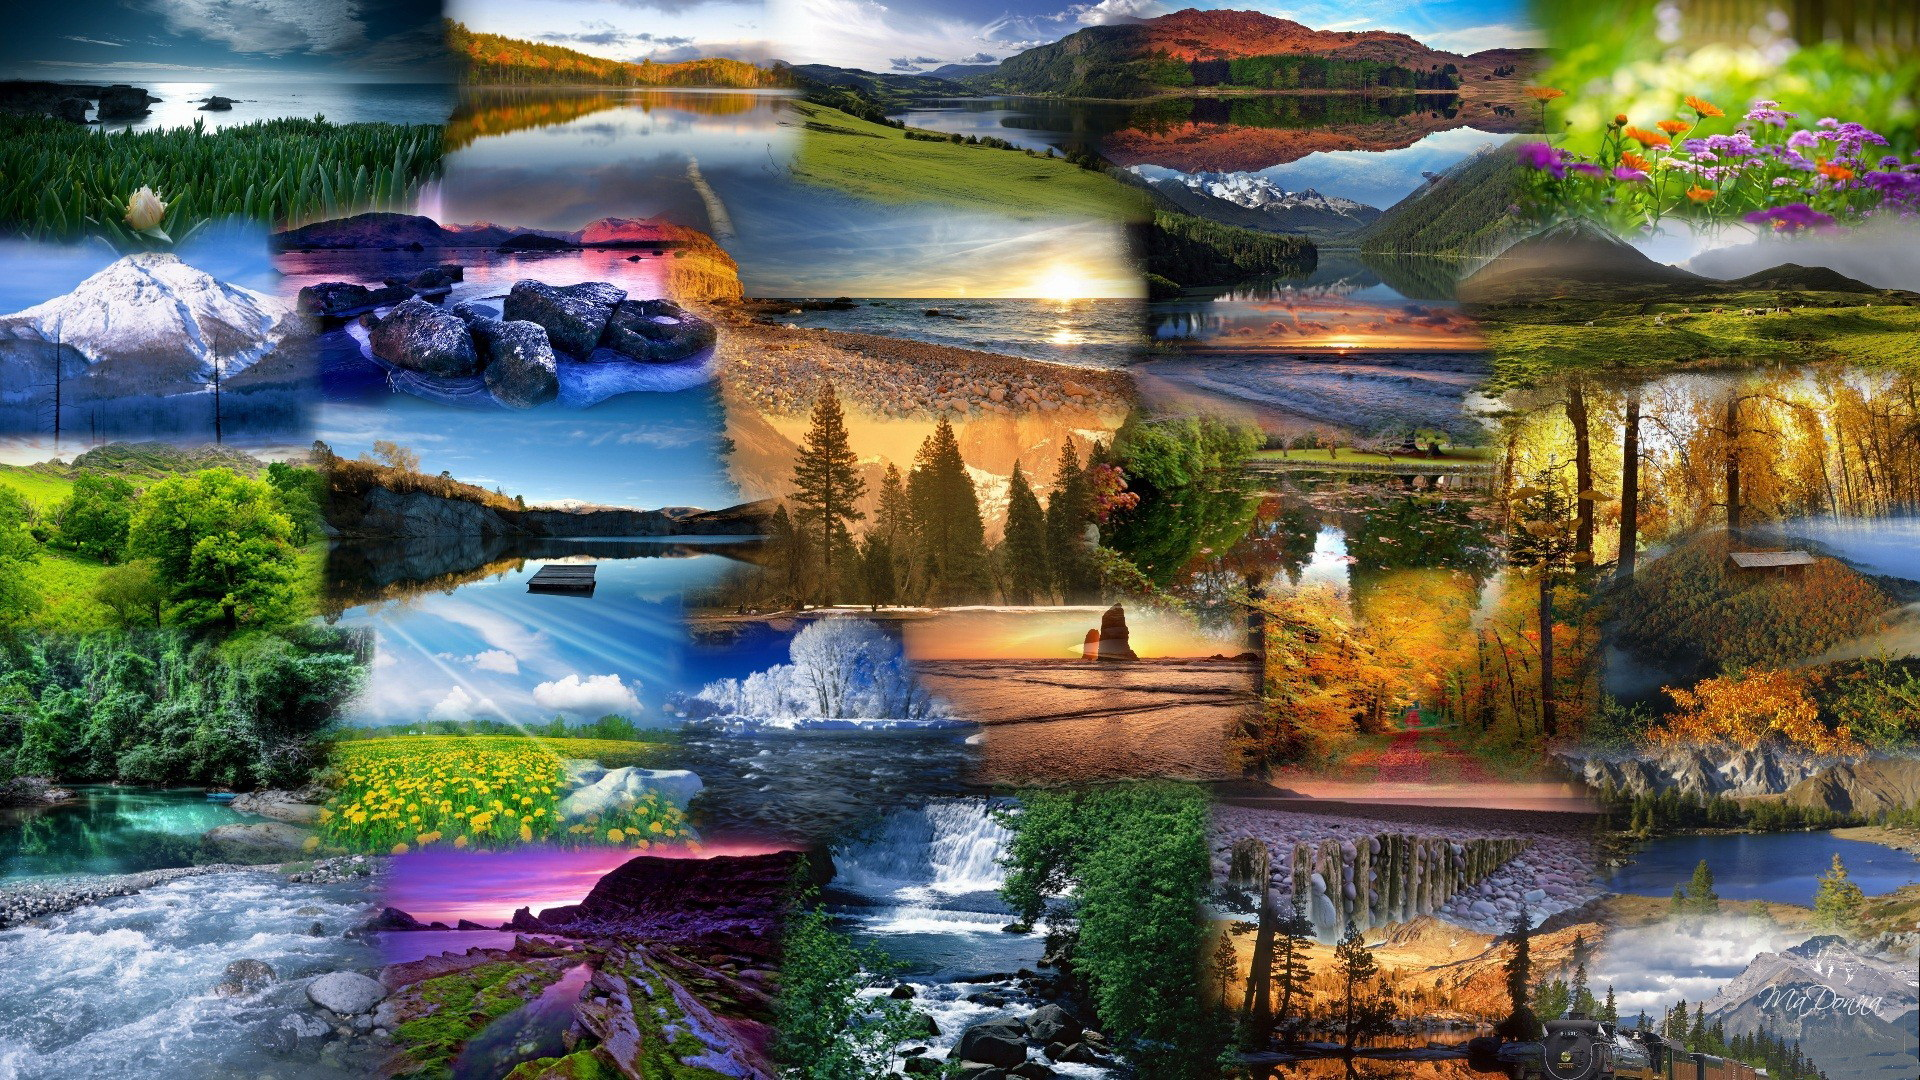 Free Animated Fall Desktop Wallpaper 4 Collage Hd Wallpapers Backgrounds Wallpaper Abyss